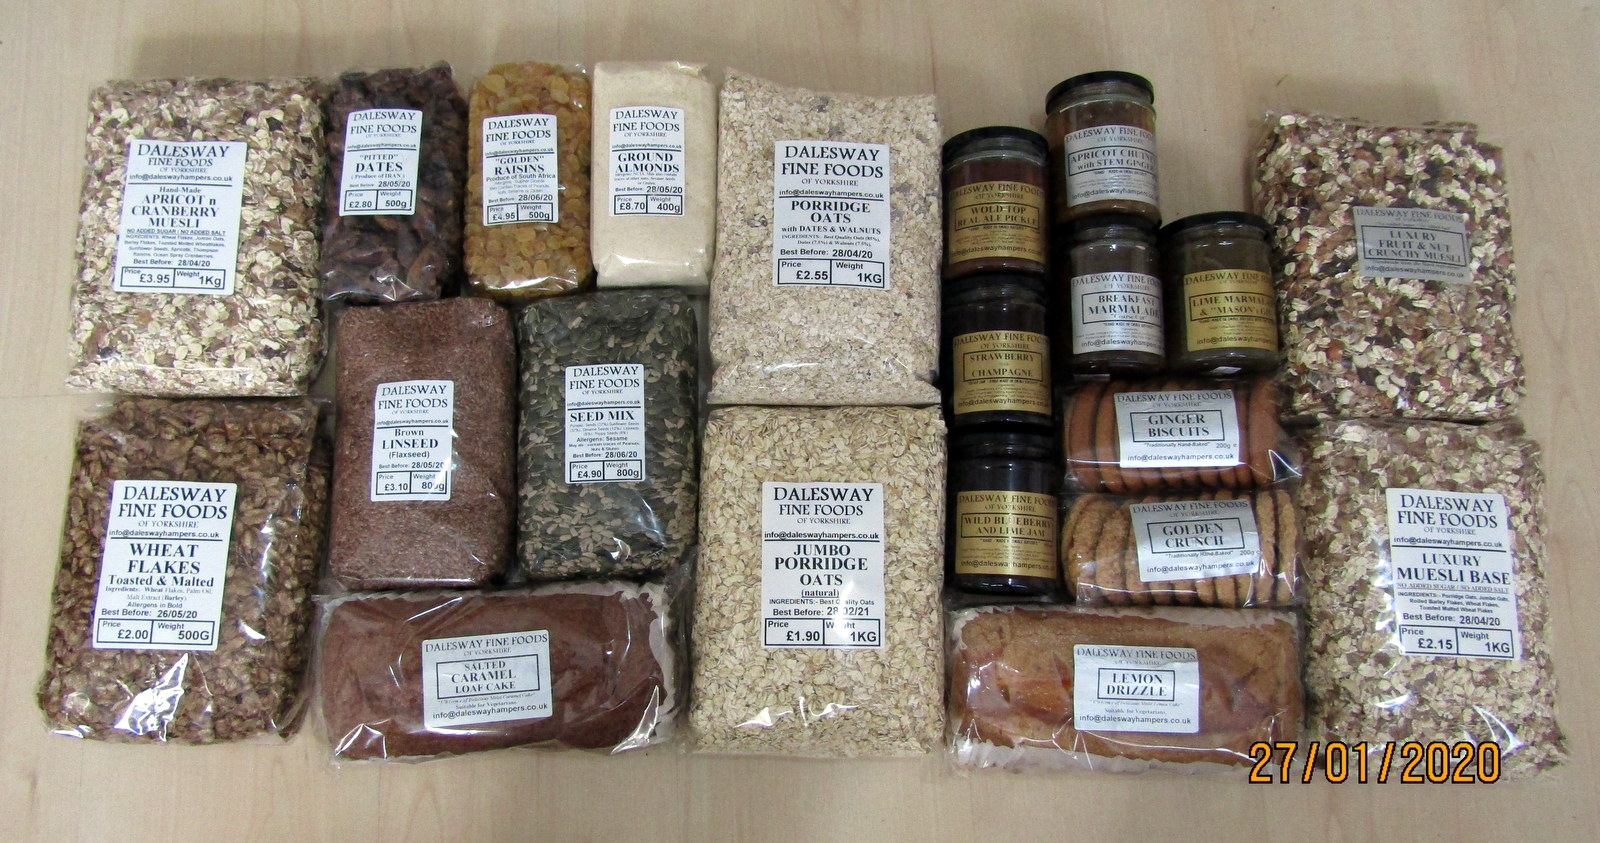 Dalesway Fine Foods